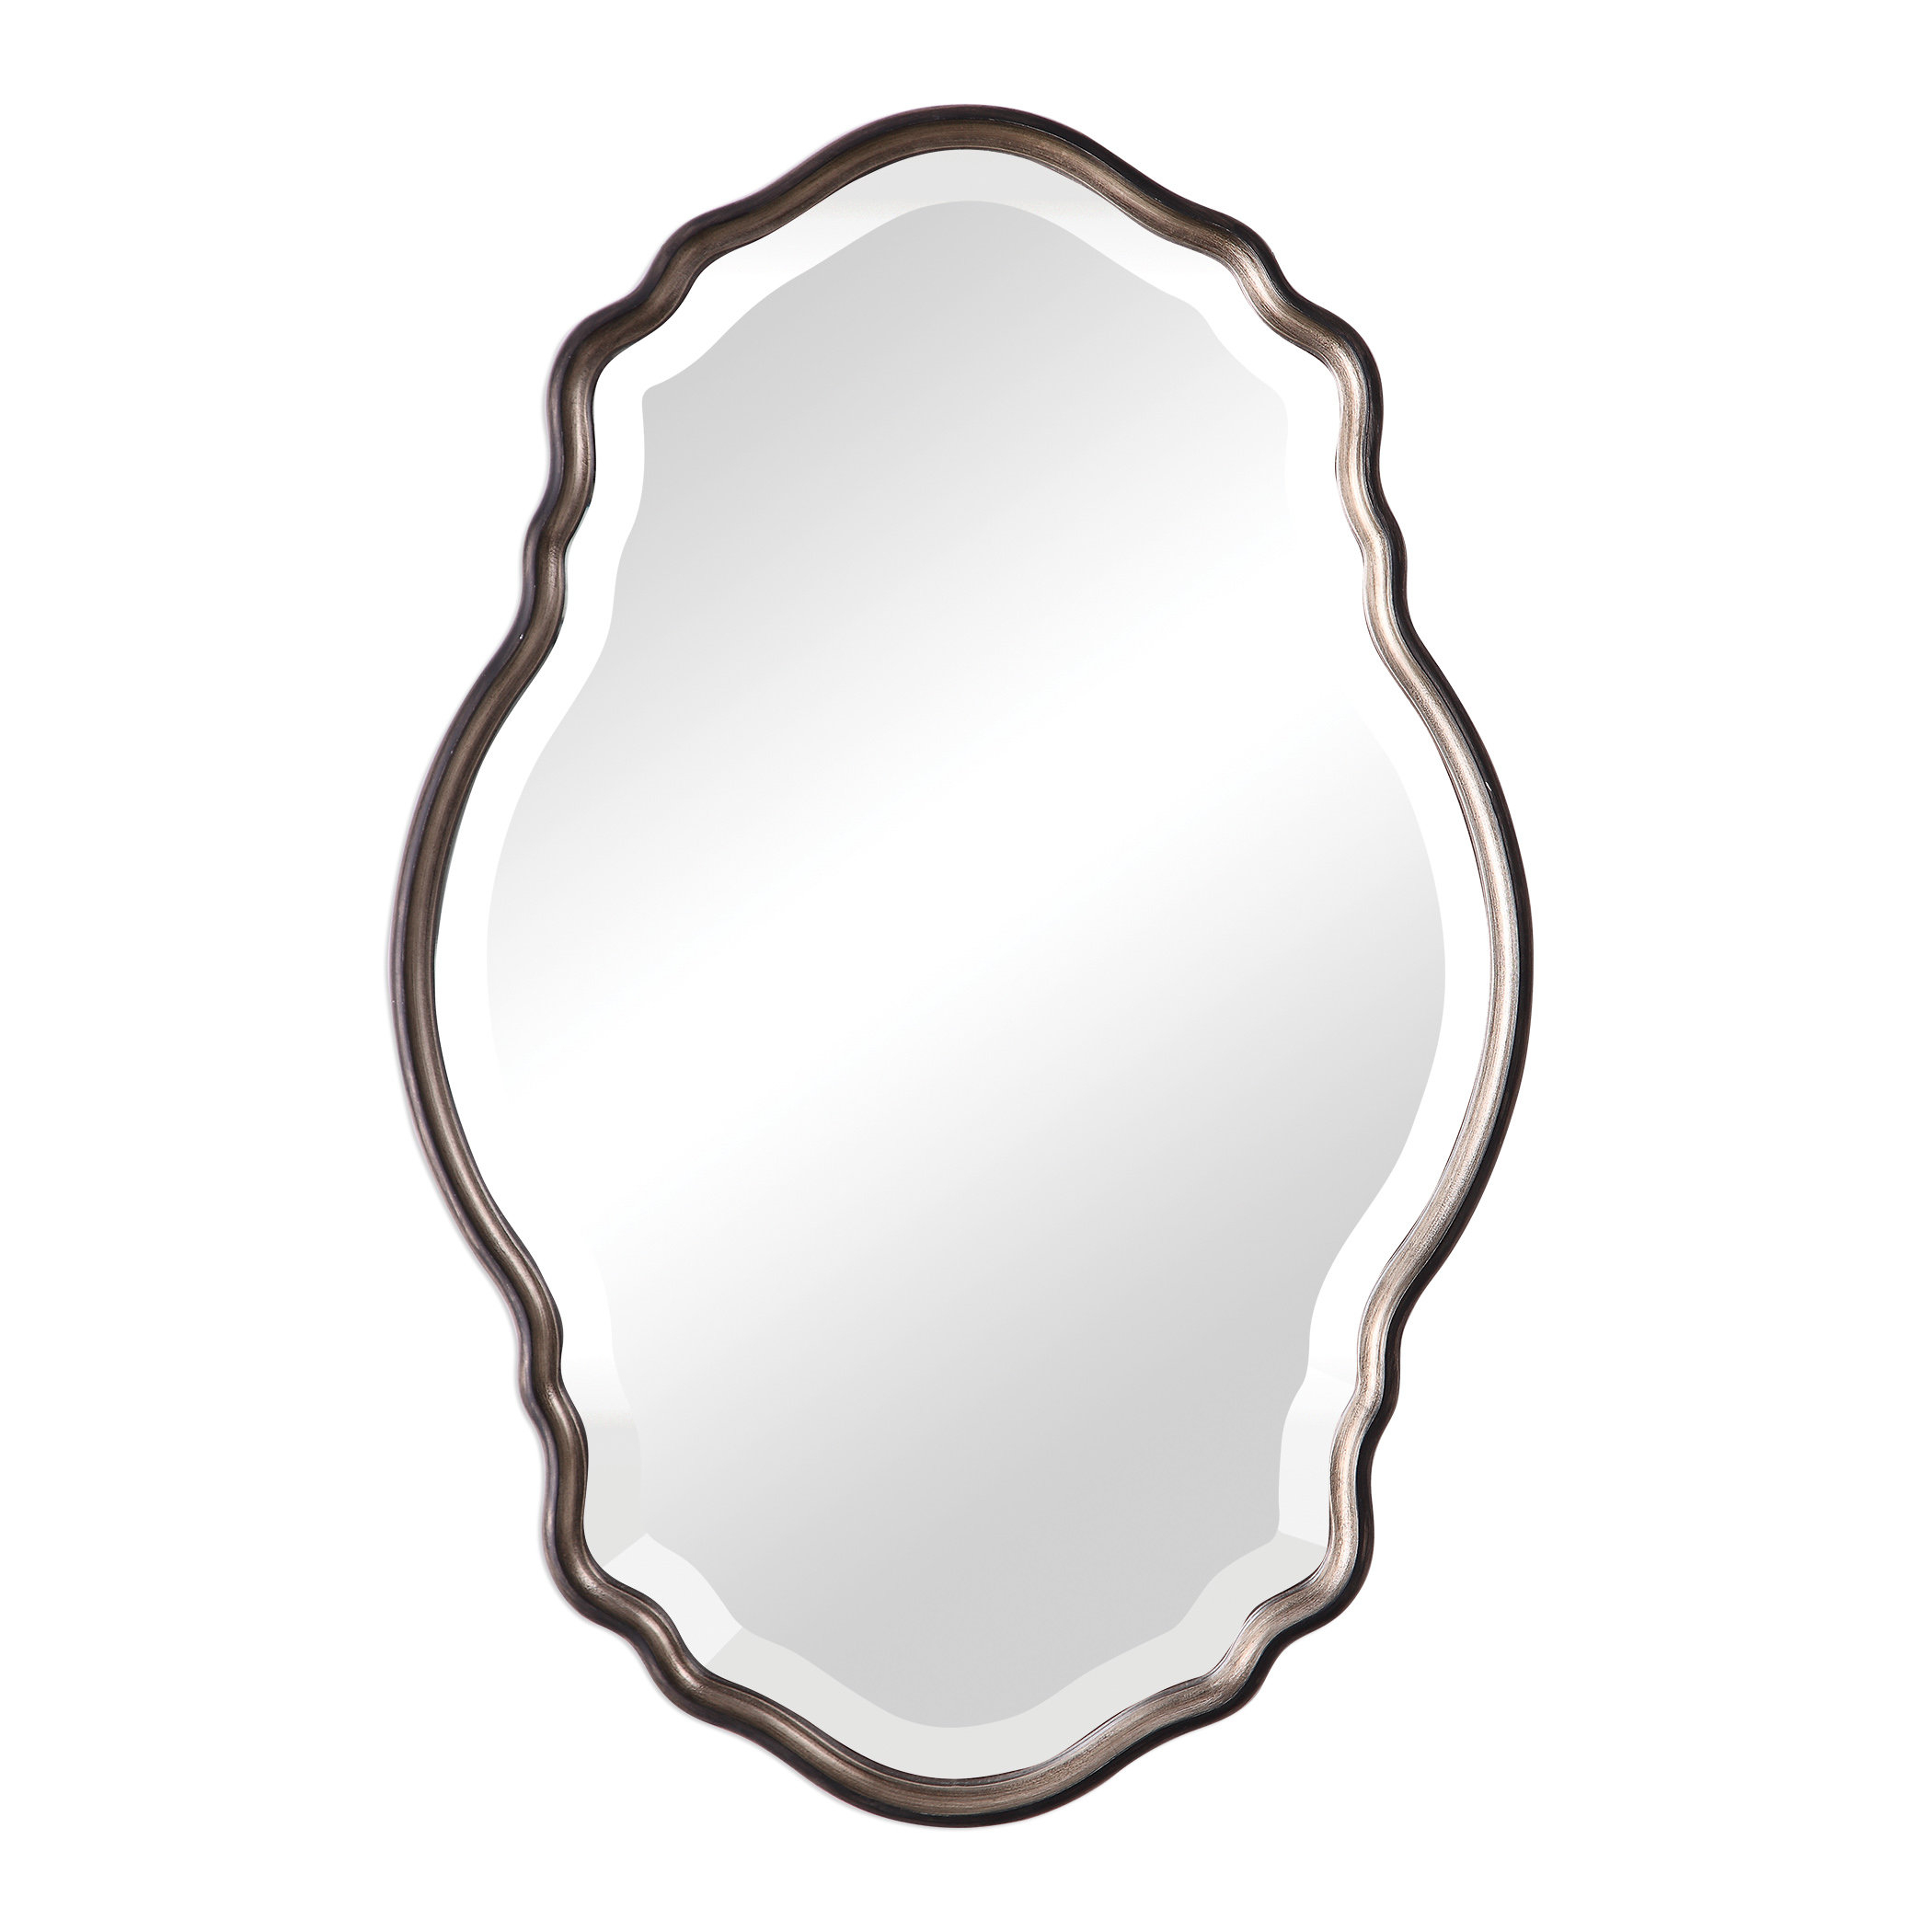 Christner Modern & Contemporary Beveled Wall Mirror Inside Modern & Contemporary Beveled Wall Mirrors (View 3 of 30)